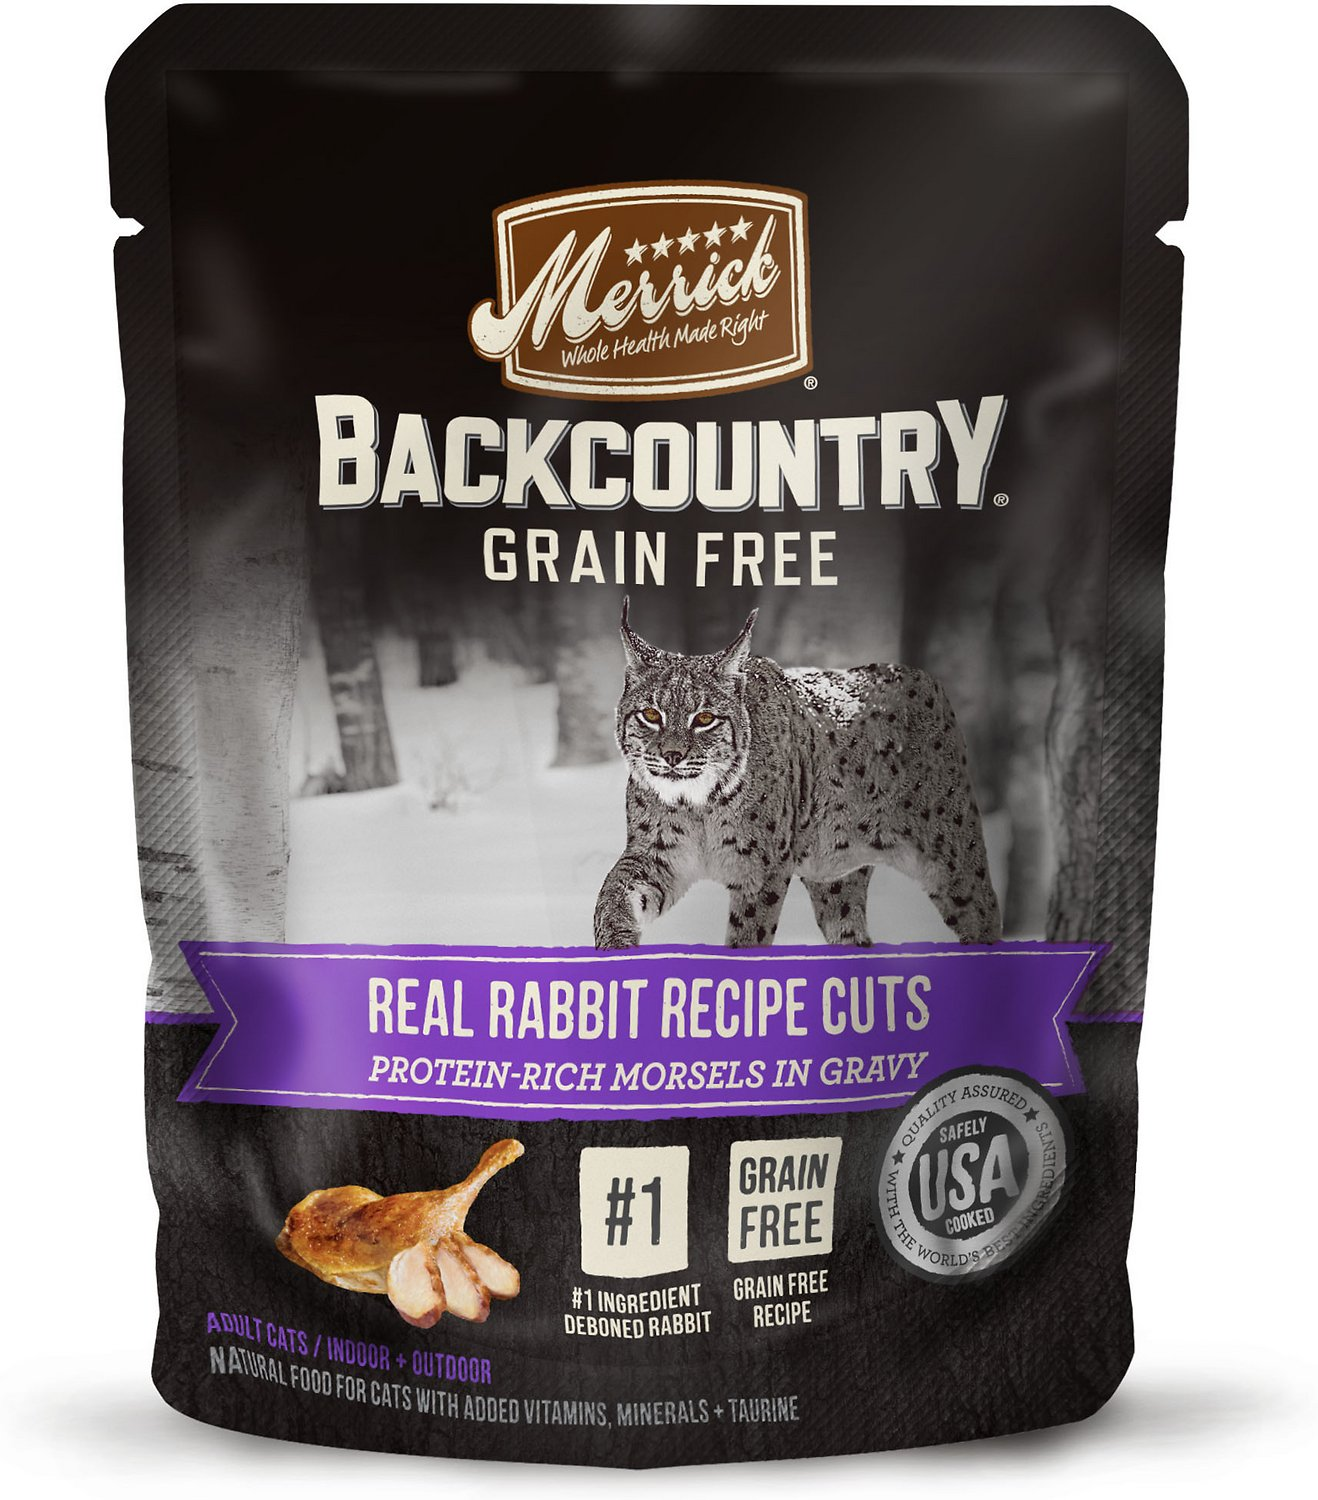 Merrick Backcountry Grain-Free Morsels in Gravy Real Rabbit Recipe Cuts Cat Food Pouches, 3-oz